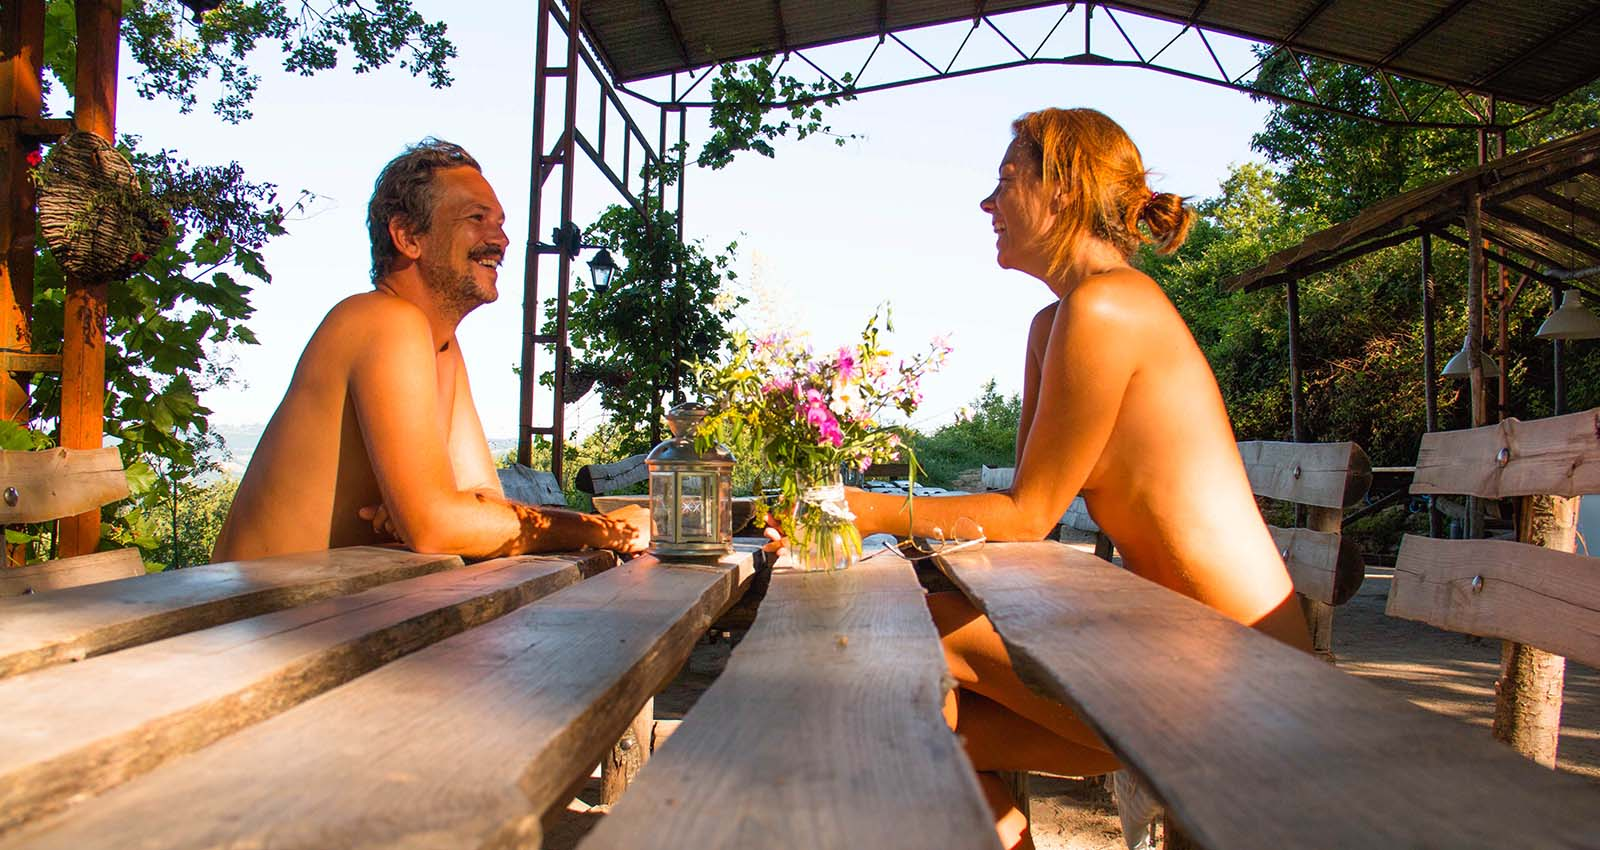 Why does the naturist get dressed for dinner?